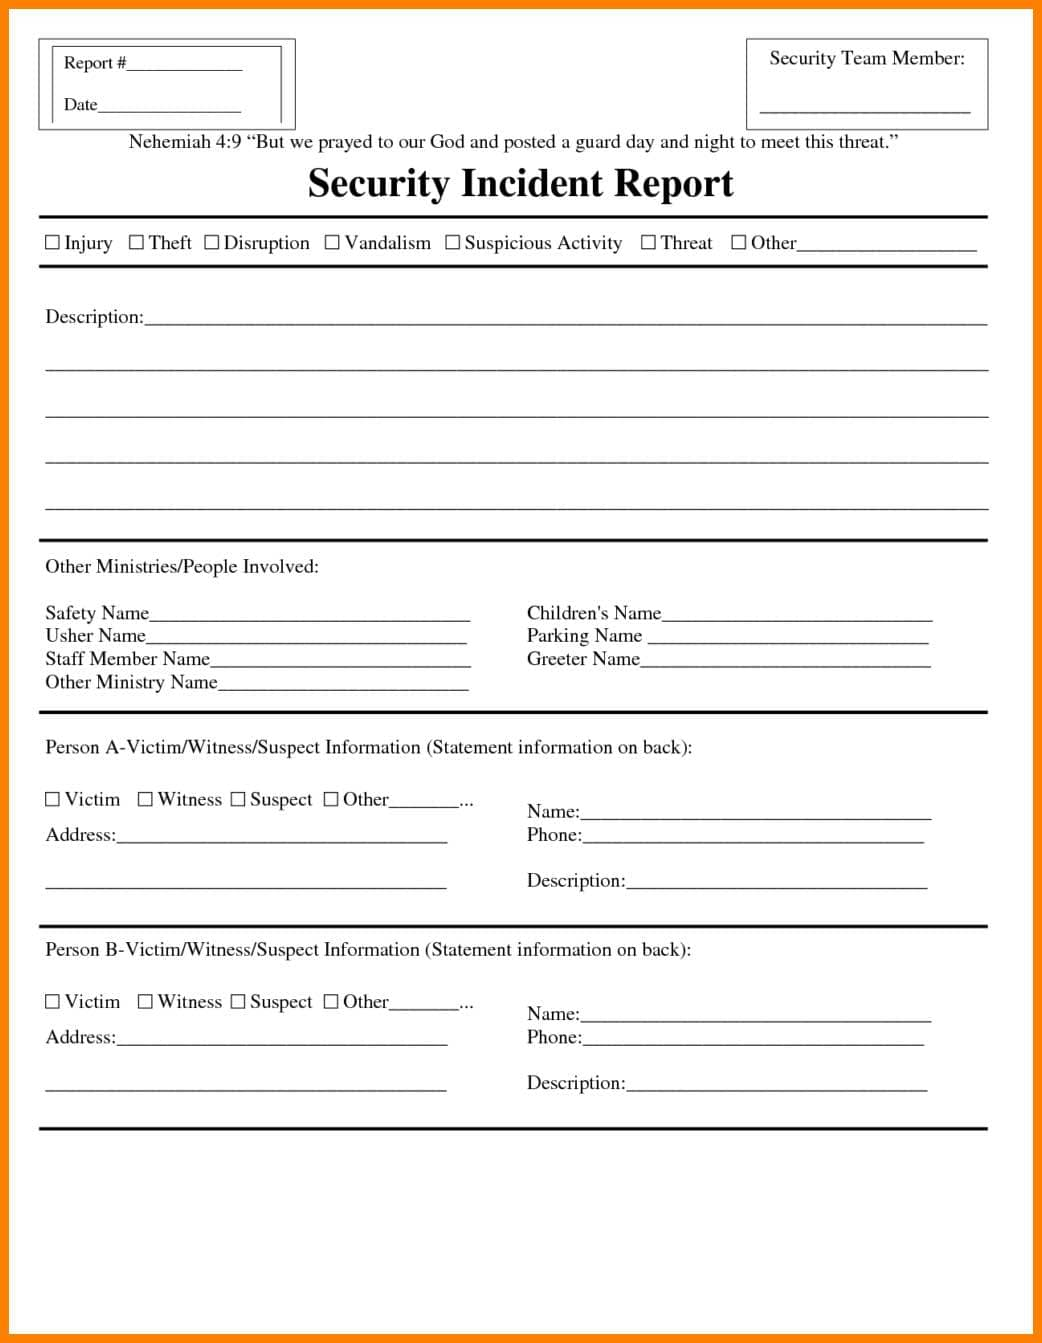 Security Incident Management Report Template And Employee Incident Report Sample